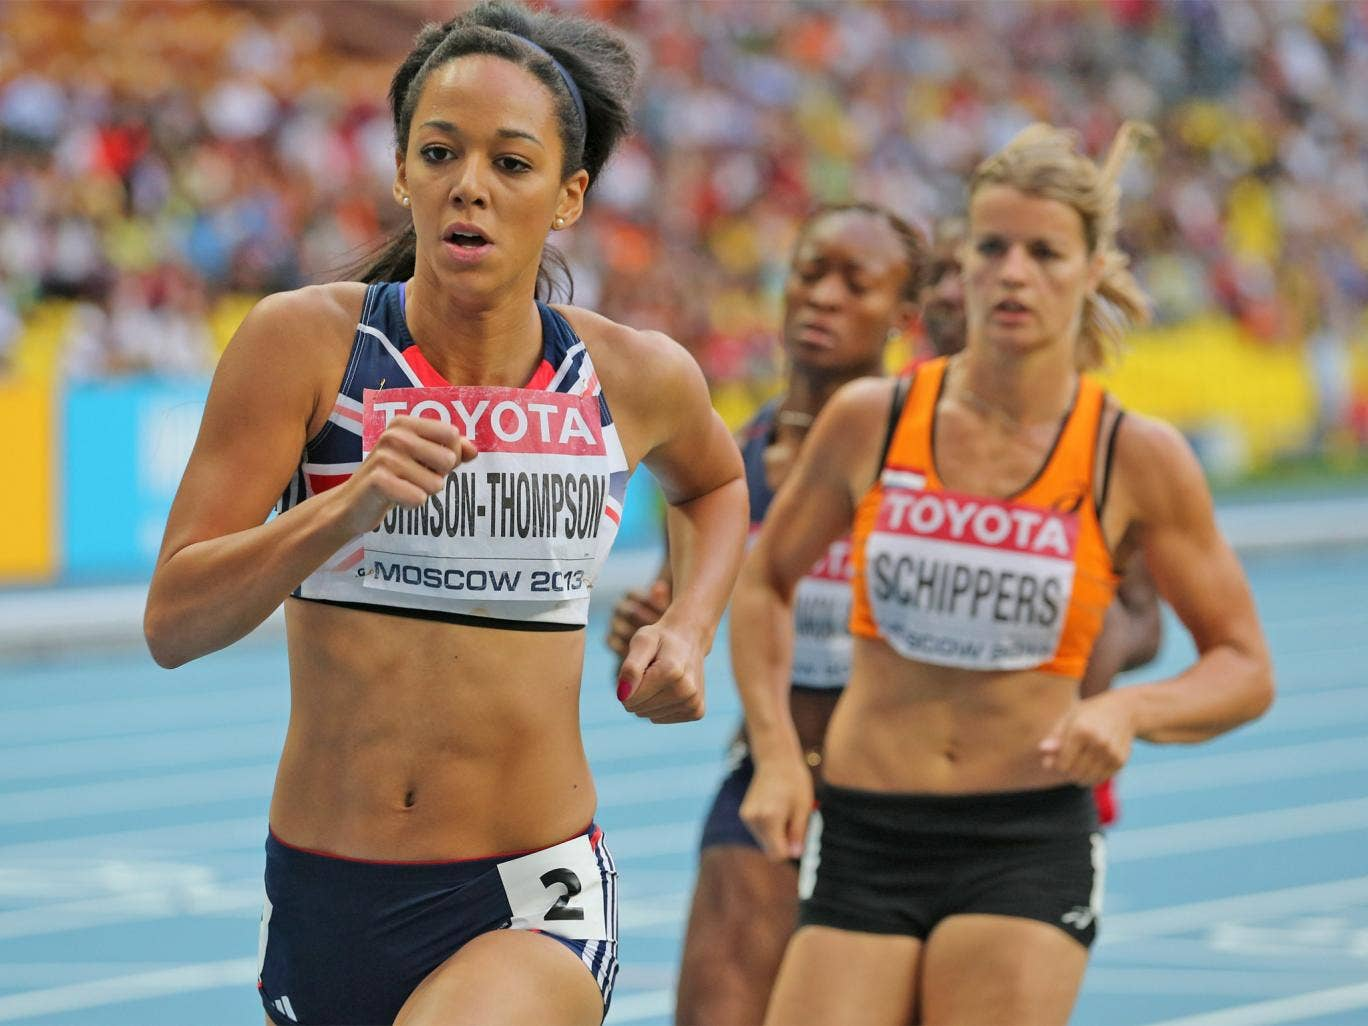 Johnson- Thompson just failed to overhaul her medal rivals in the 800m